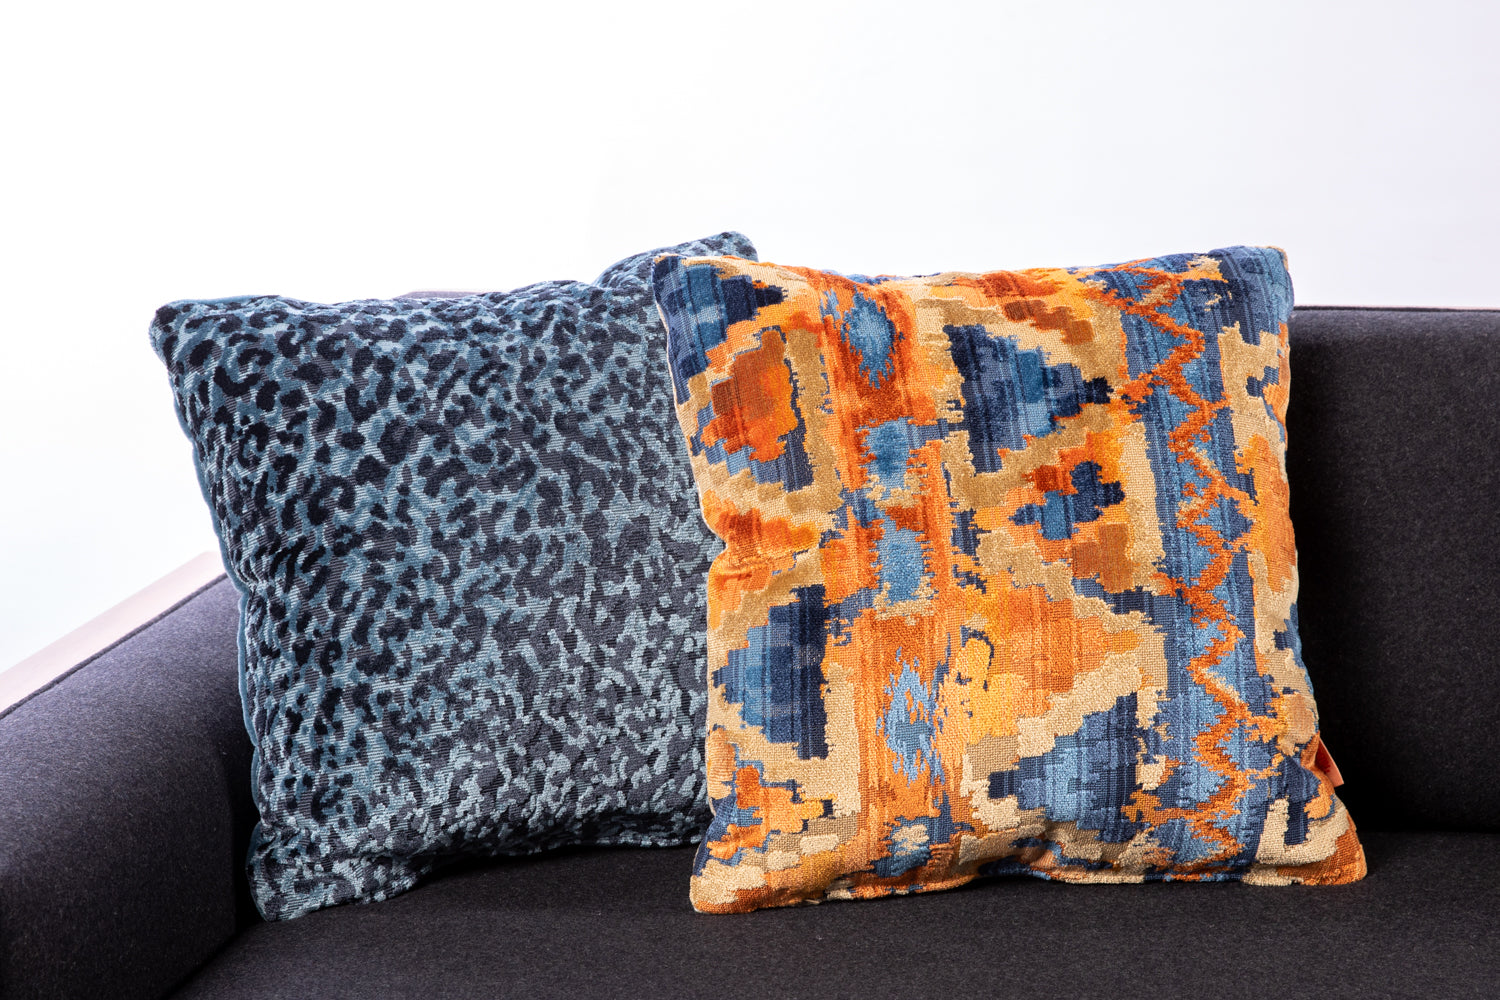 Beacon Hill fabrics, animal and abstract pattern toss pillows